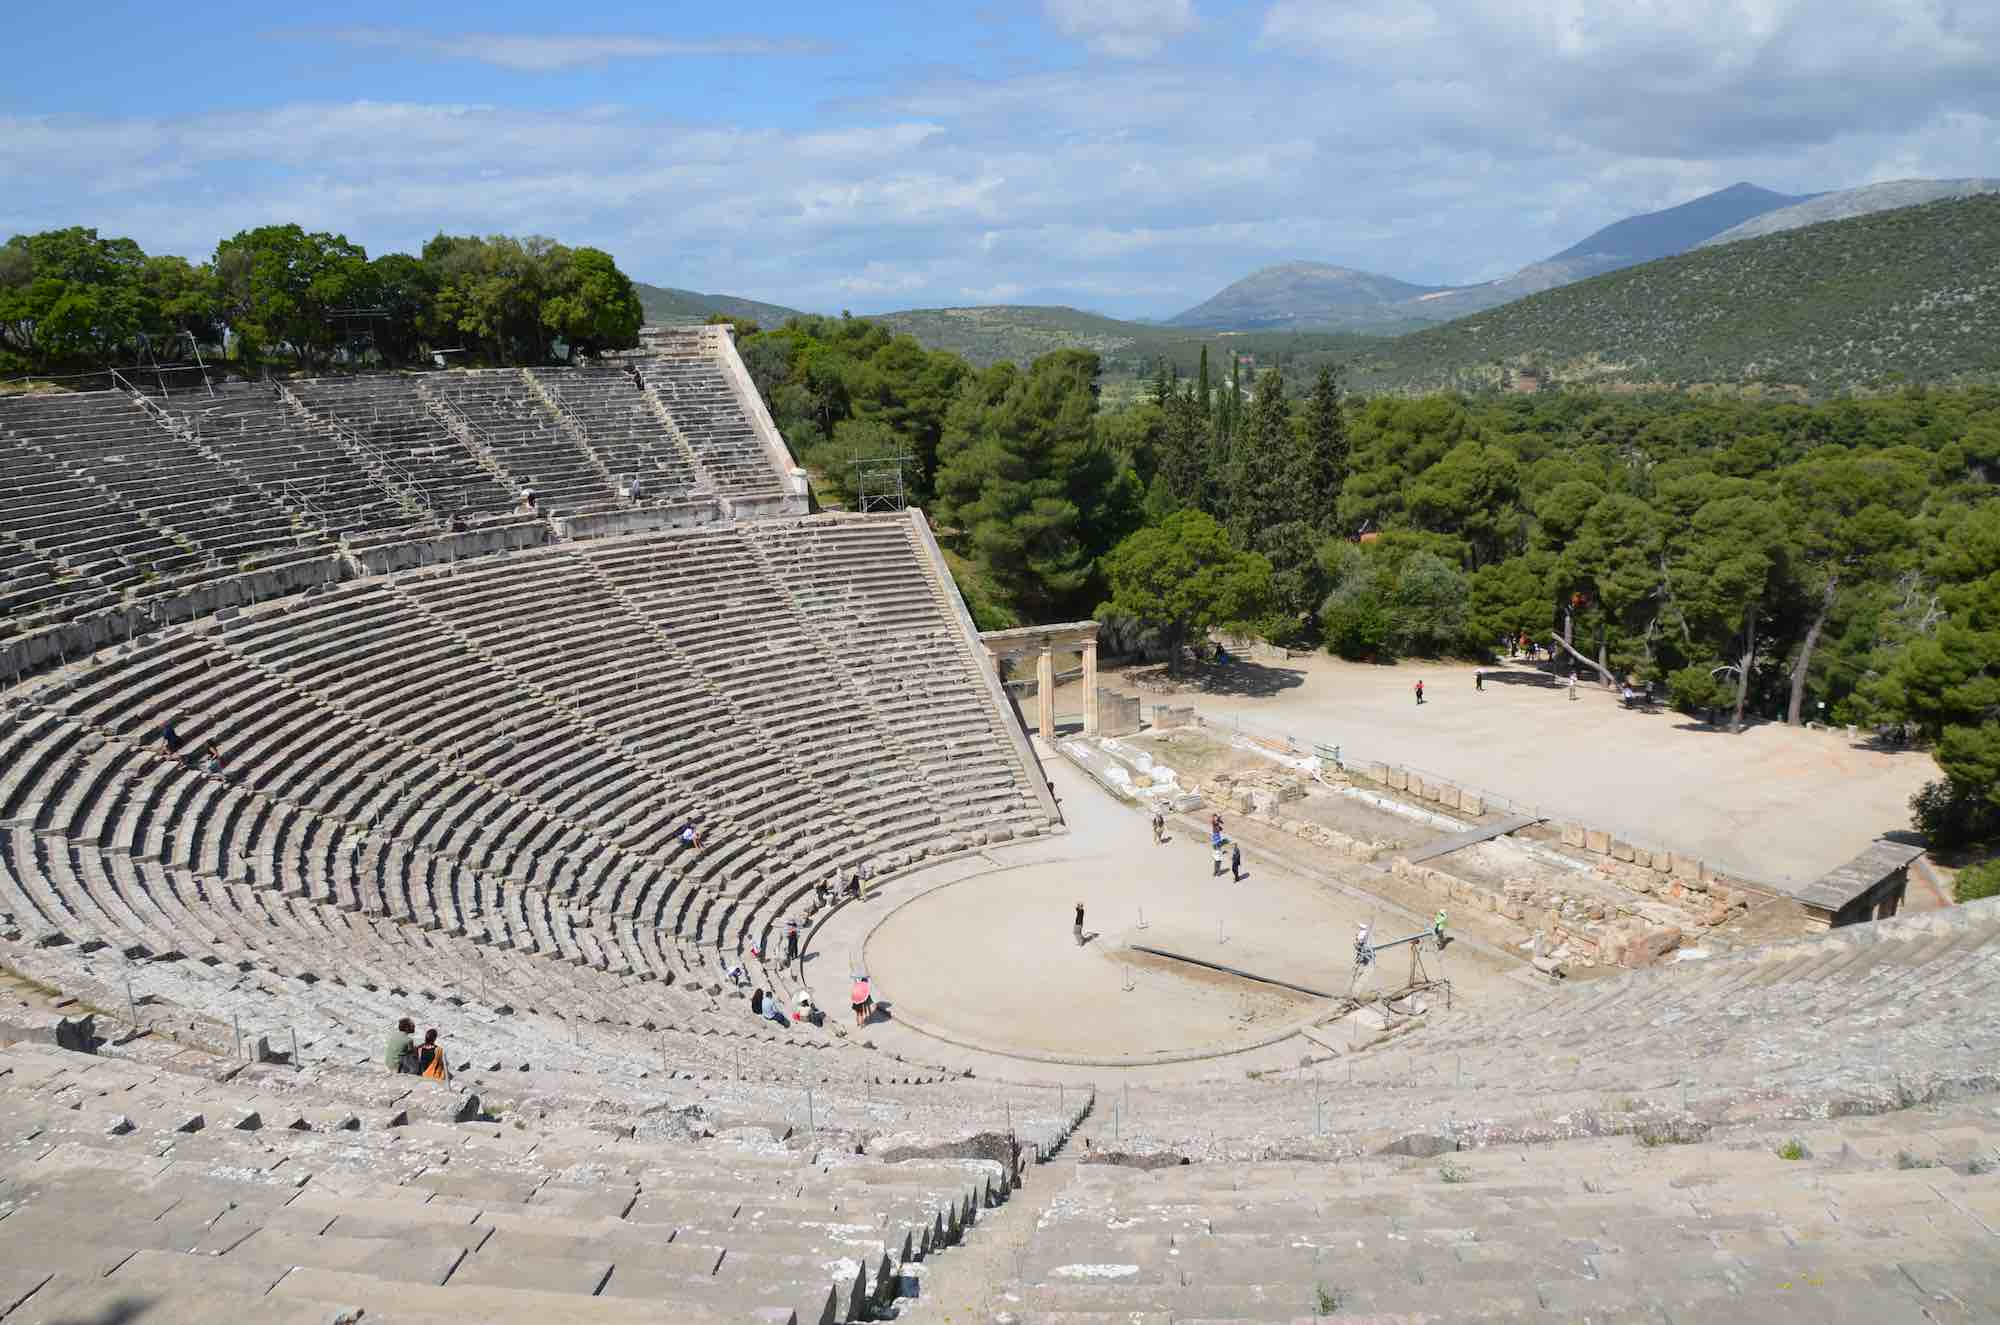 Carole Raddato from FRANKFURT, Germany / CC BY-SA (https://creativecommons.org/licenses/by-sa/2.0); https://commons.wikimedia.org/wiki/File:The_great_theater_of_Epidaurus,_designed_by_Polykleitos_the_Younger_in_the_4th_century_BC,_Sanctuary_of_Asklepeios_at_Epidaurus,_Greece_(14015010416).jpg